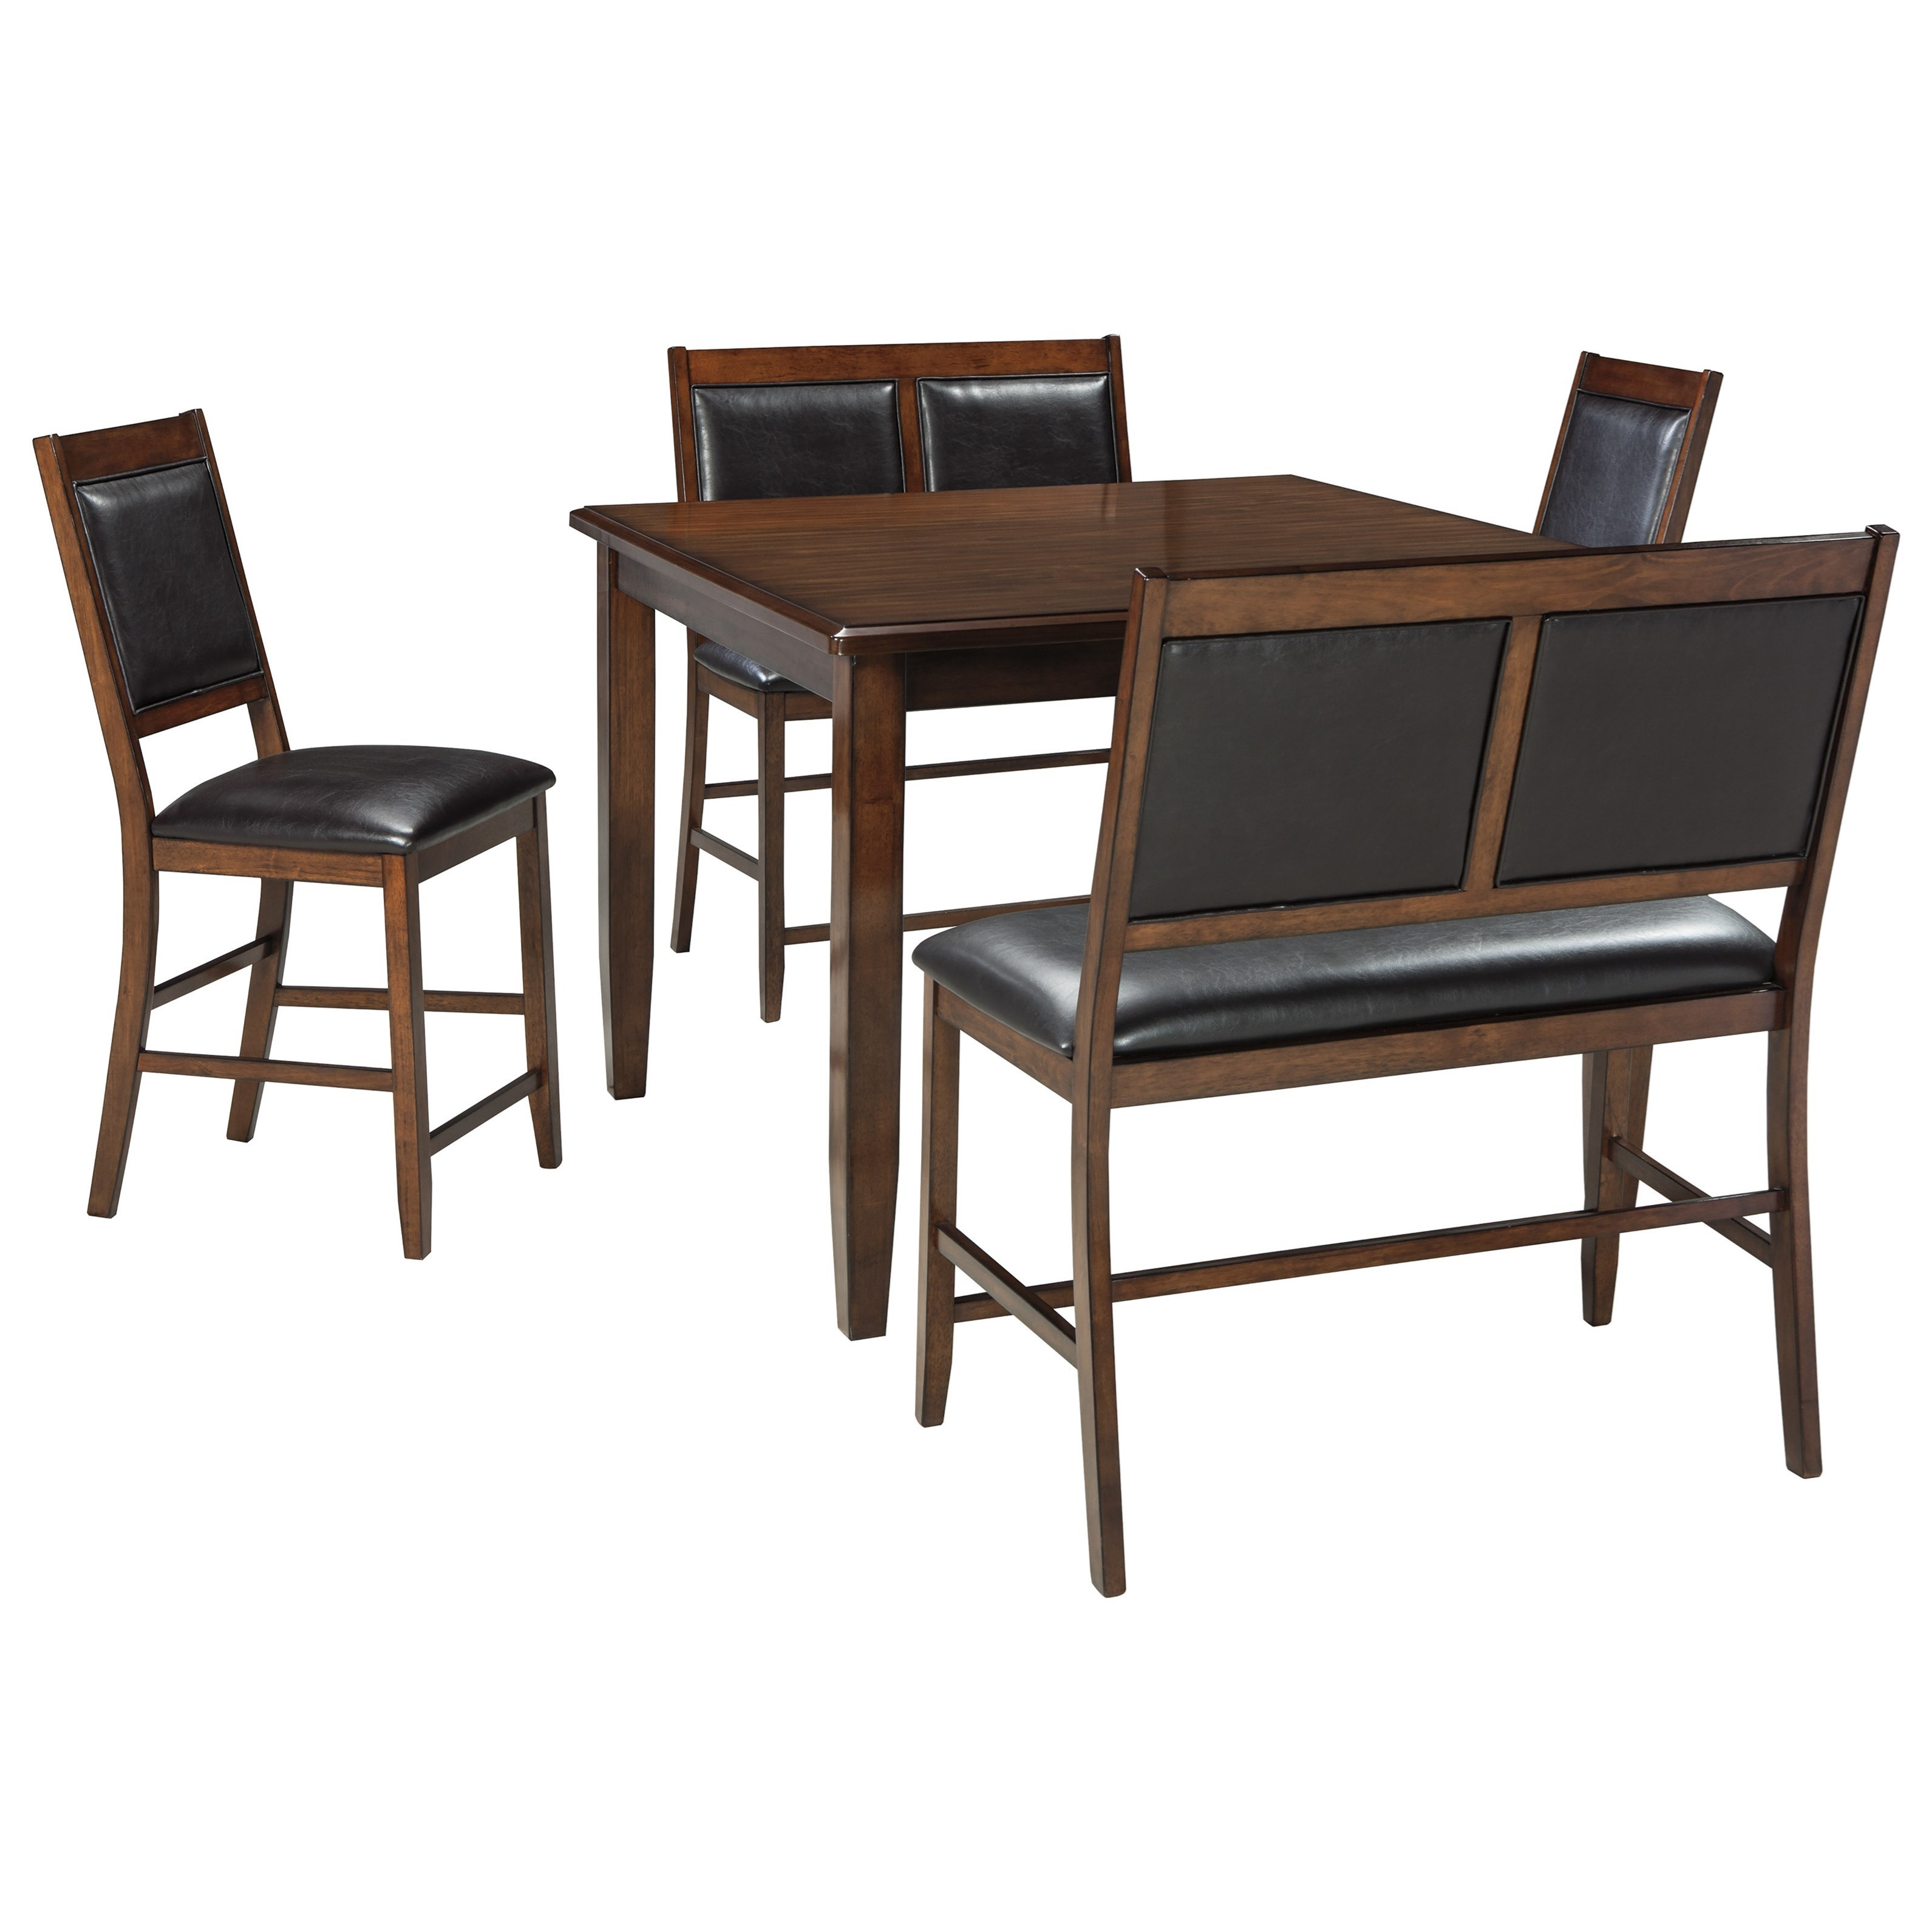 Signature design by ashley meredy 5 piece dining room for 5 piece dining room set with bench